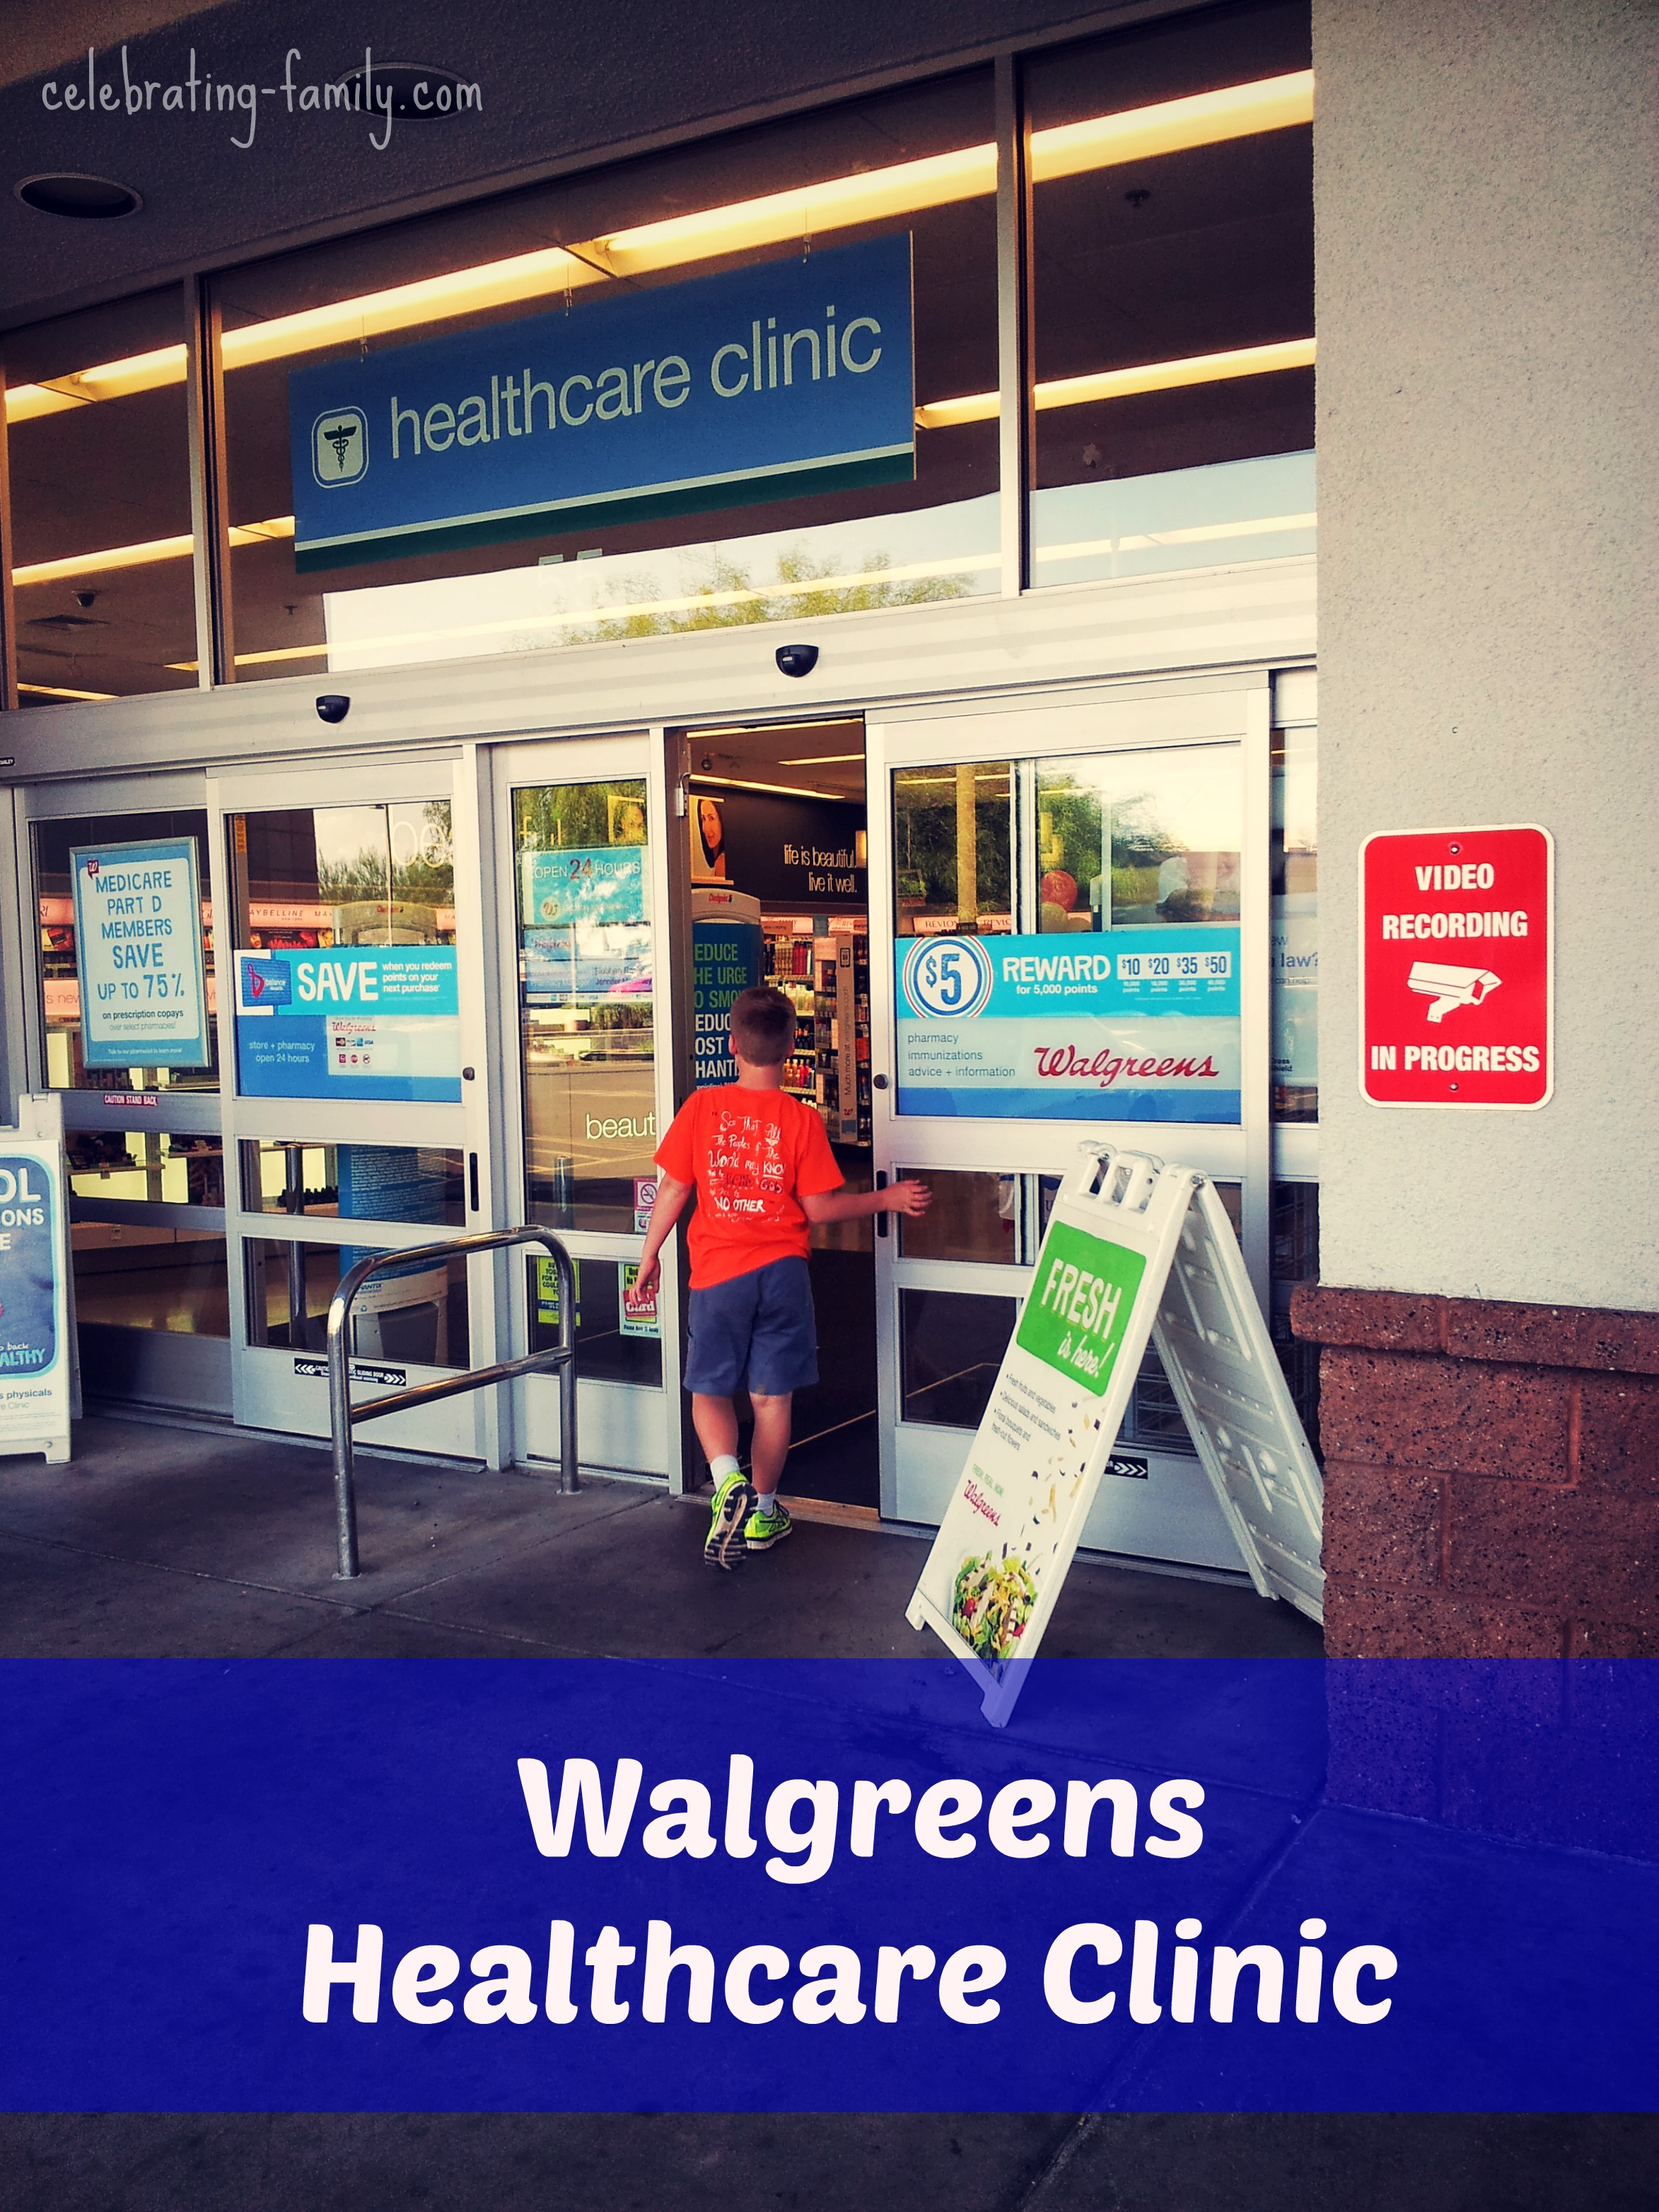 Company Overview. Walgreen is a company that deals in drug retailing with more than eight thousand stores in fifty states across U.S. The company offers wellness, health, and pharmacy products through a number of retail drugstores.